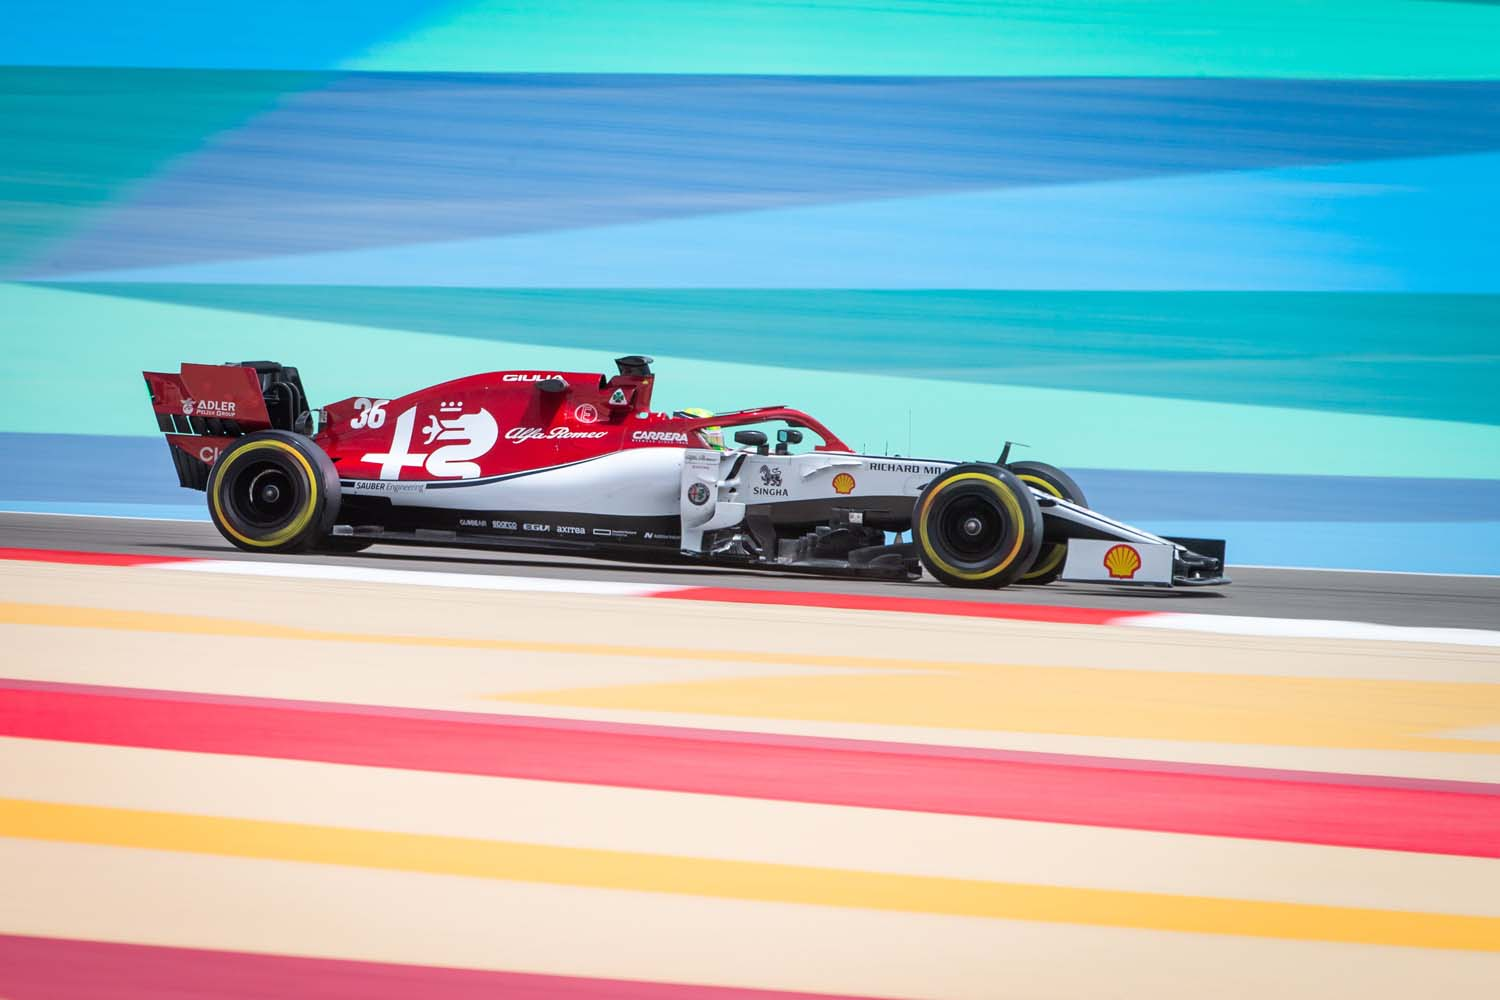 F1 - TESTS BAHRAIN 2019